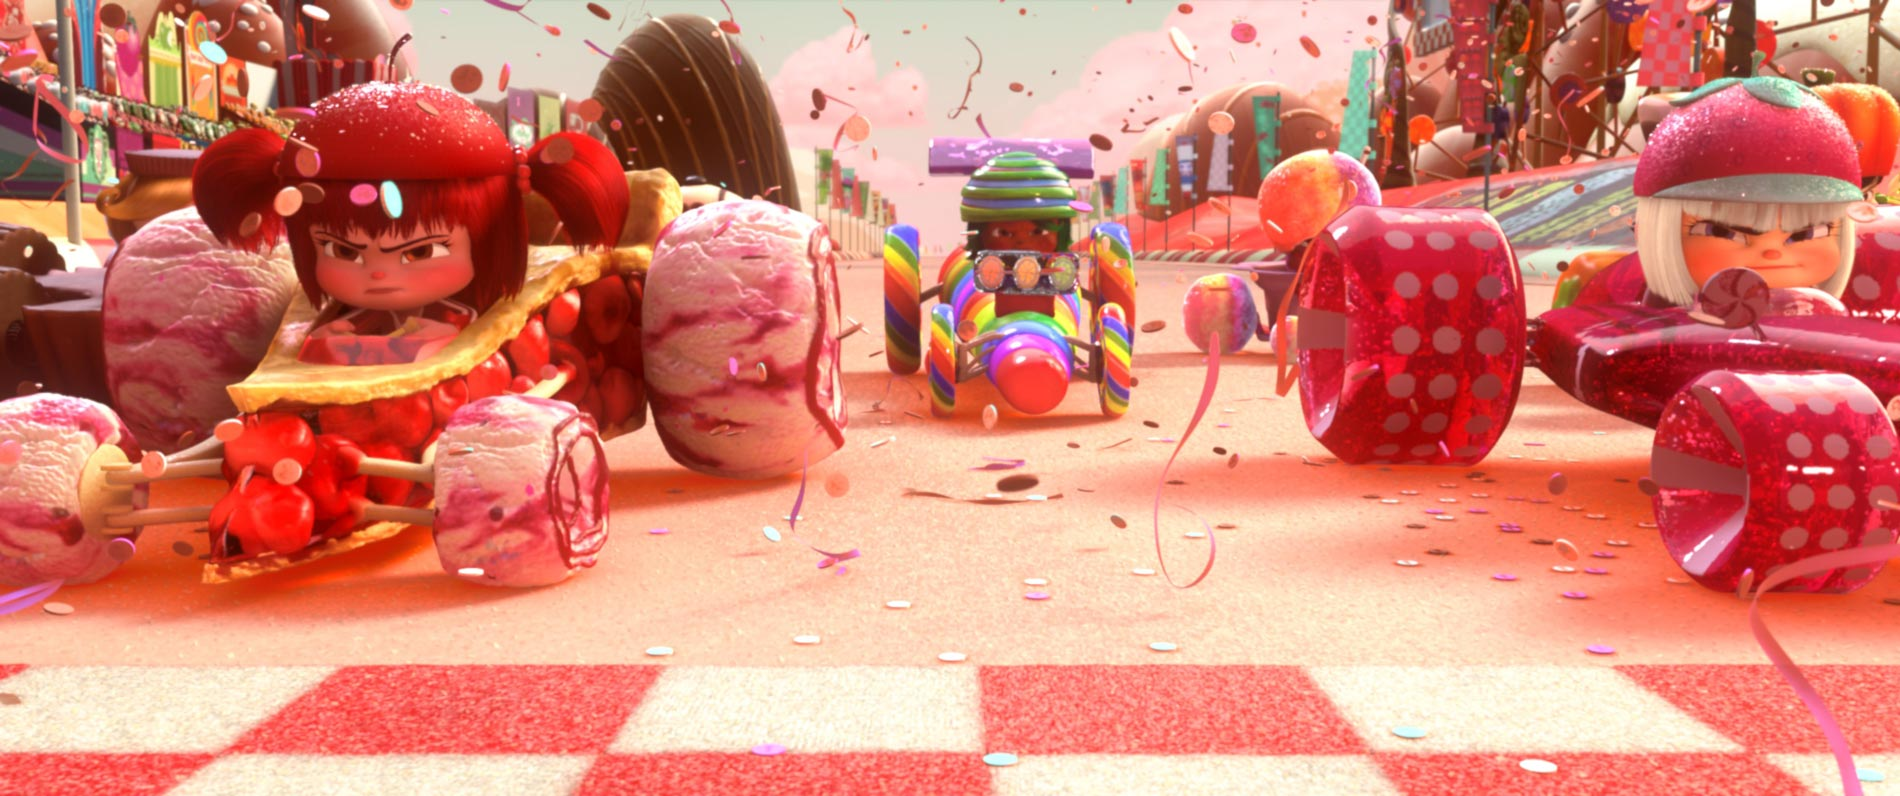 WRECK-IT RALPH Trailer #2